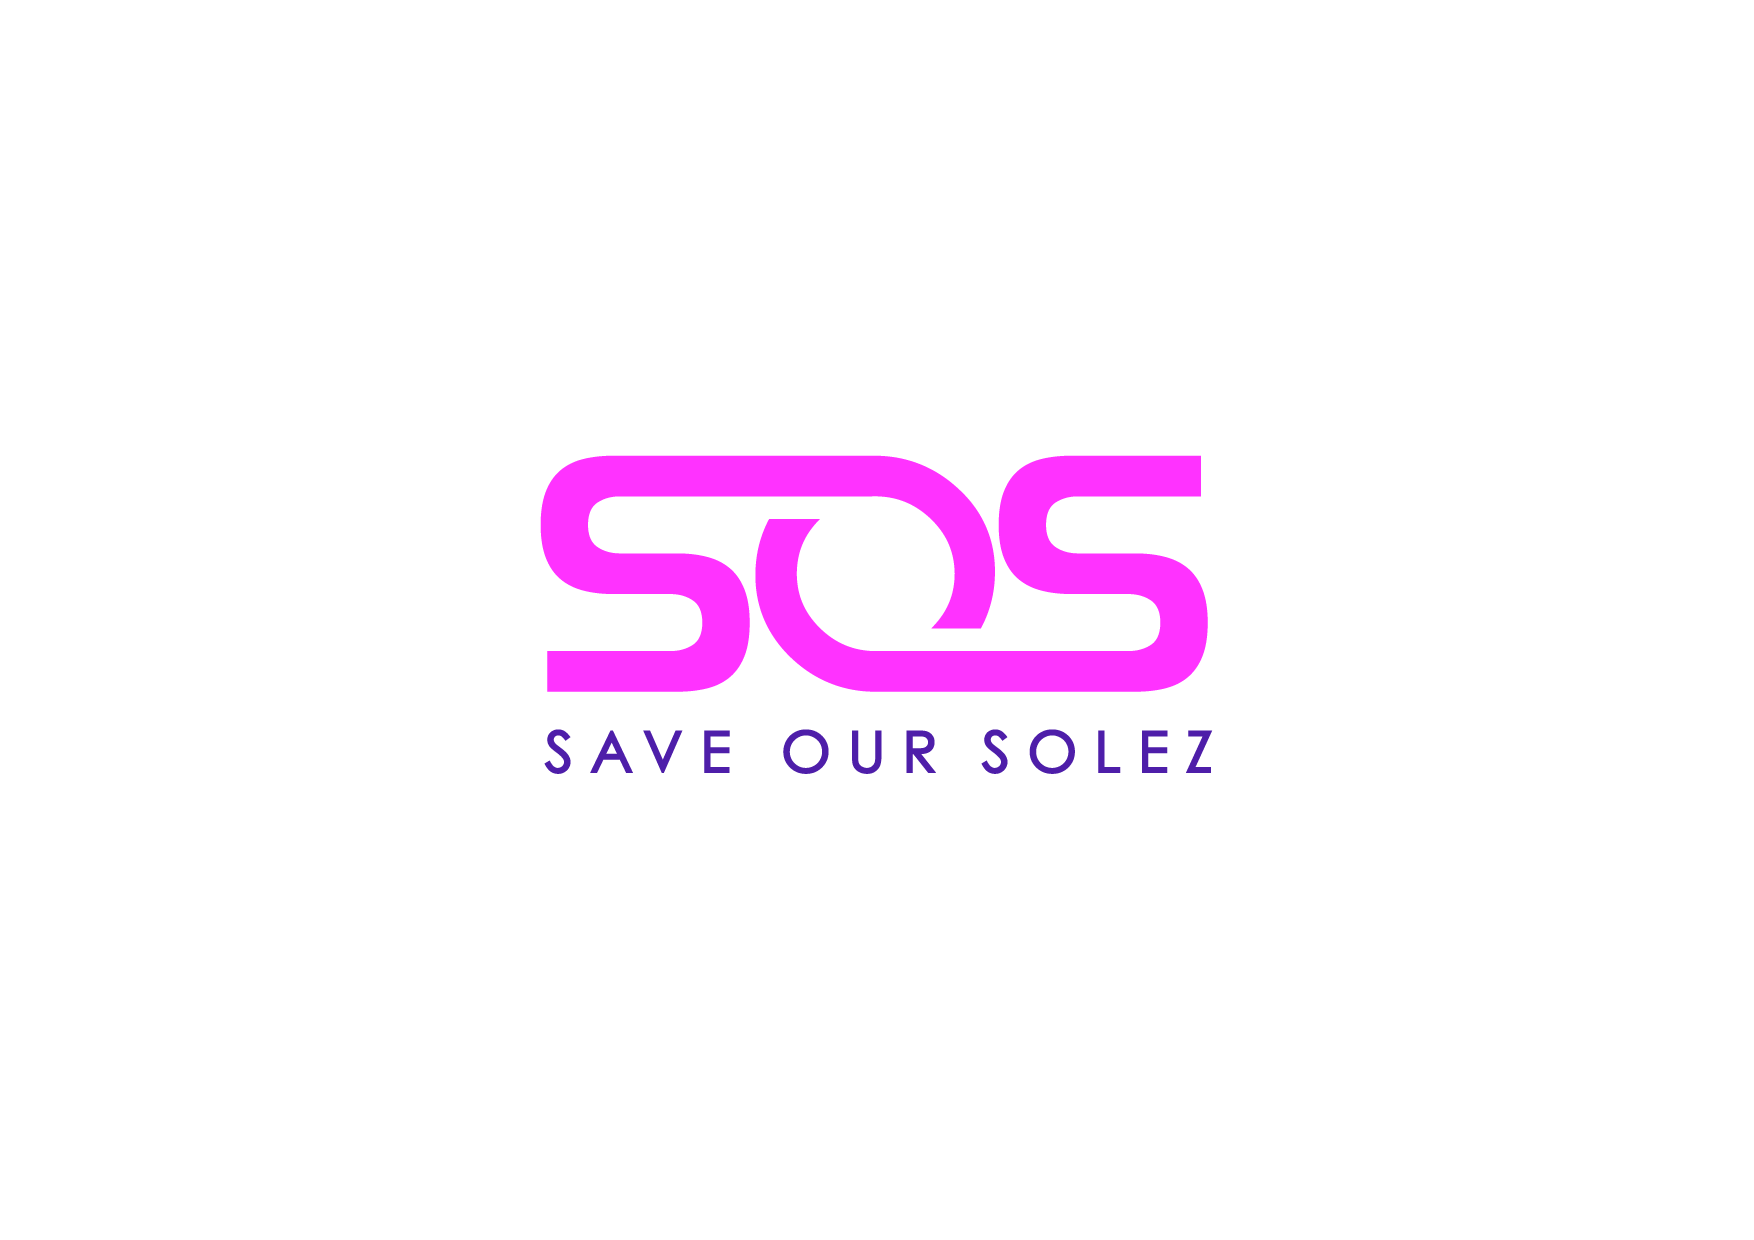 Logo Design by bulb - Entry No. 10 in the Logo Design Contest Captivating Logo Design for Save Our Solez.